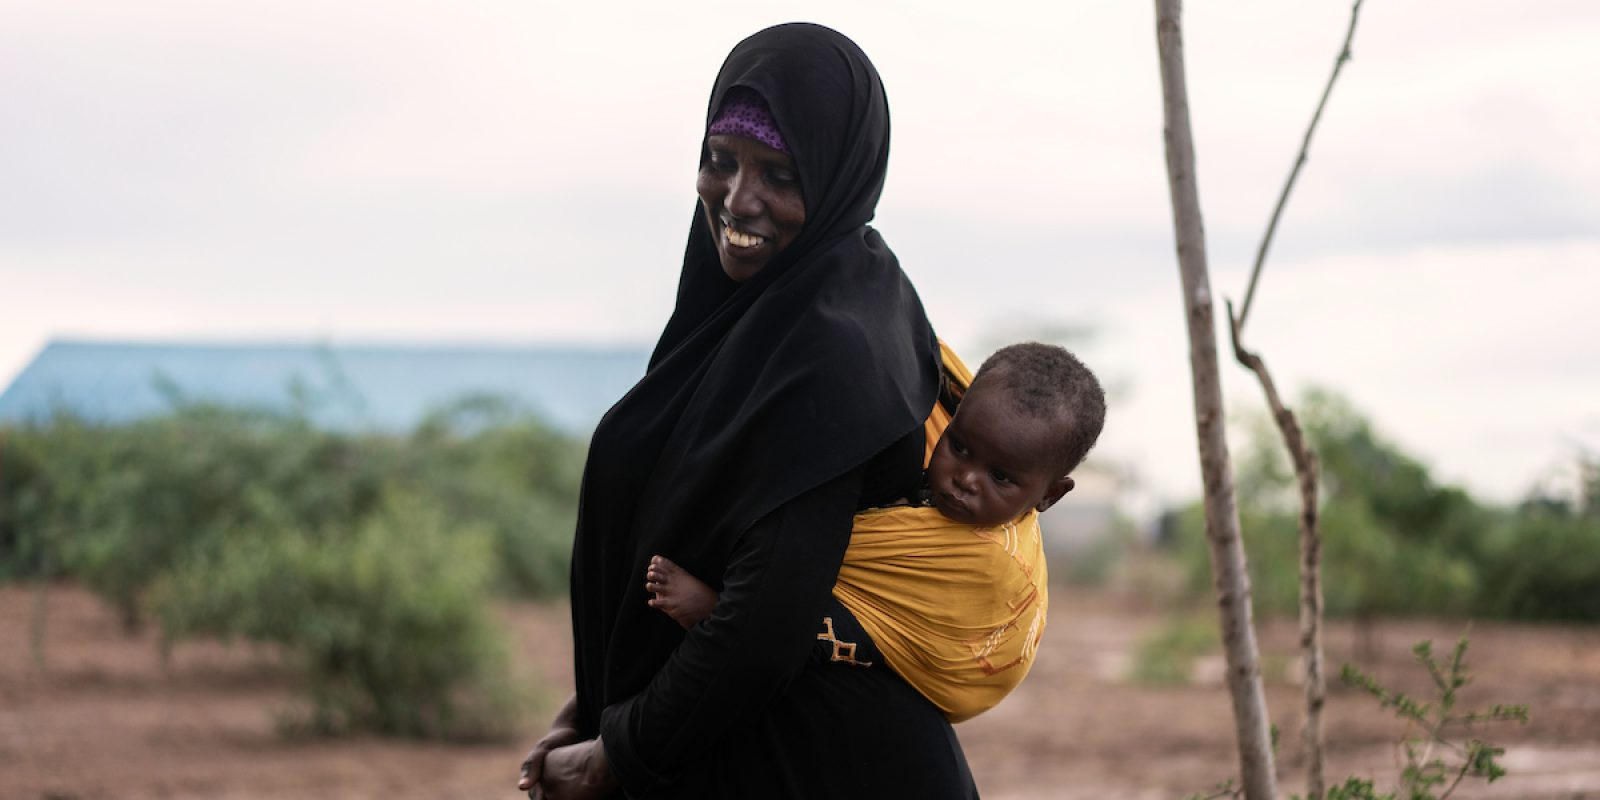 Rahma came to Kakuma as a refugee from Ethiopia together with her husband and oldest son in 2018, While her 8 other children remained behind. She took a training and now work as a JRS staff for the Special Need unit in centre 4. She also adopted baby Blaze, who was left alone by her parents. (Fredrik Lerneryd/Jesuit Refugee Service)